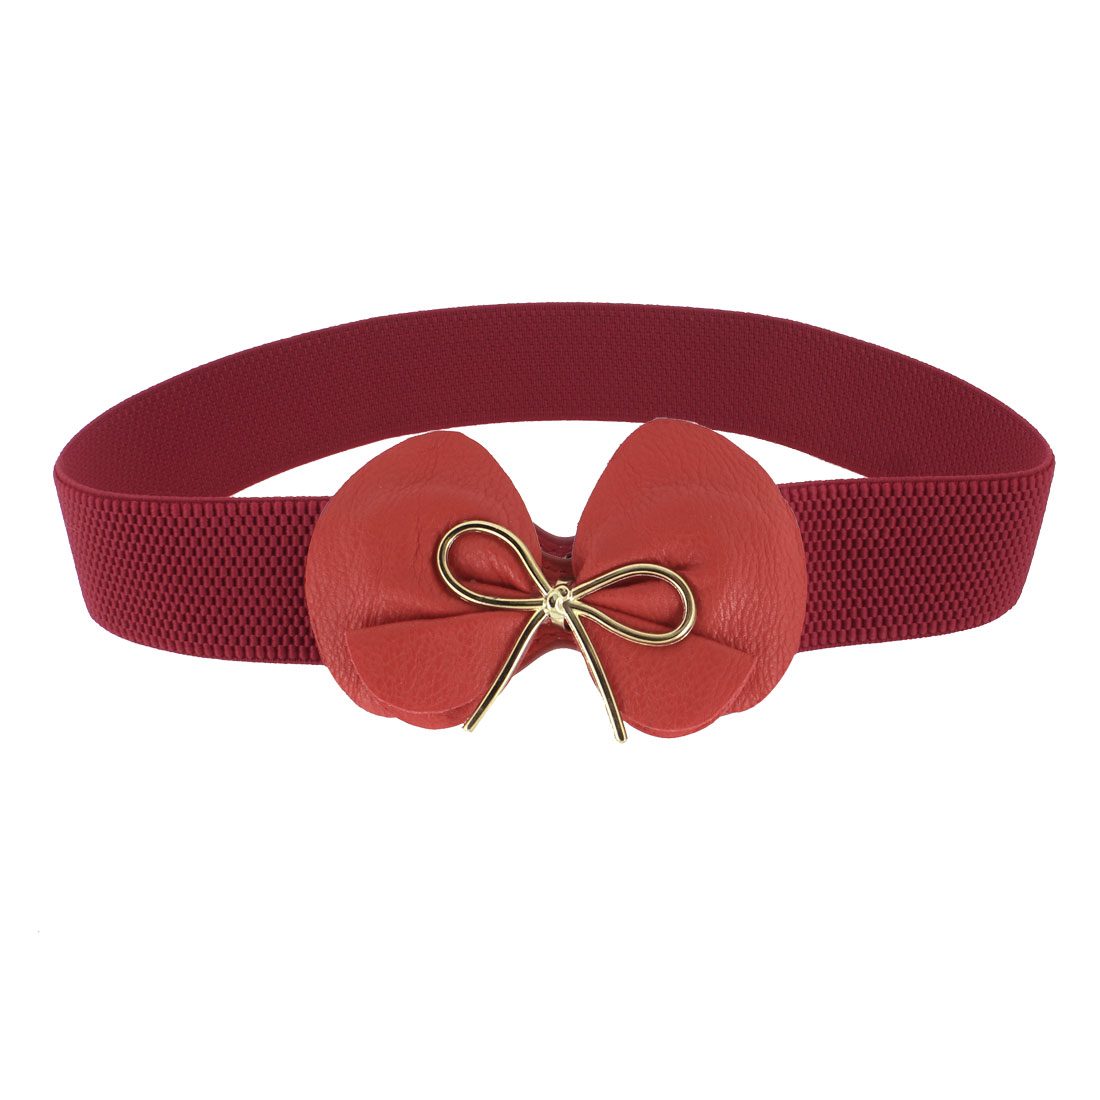 Lady Bow Tie Press Stud Buckle Textured Stretch Narrow Red Skinny Cinch Belt